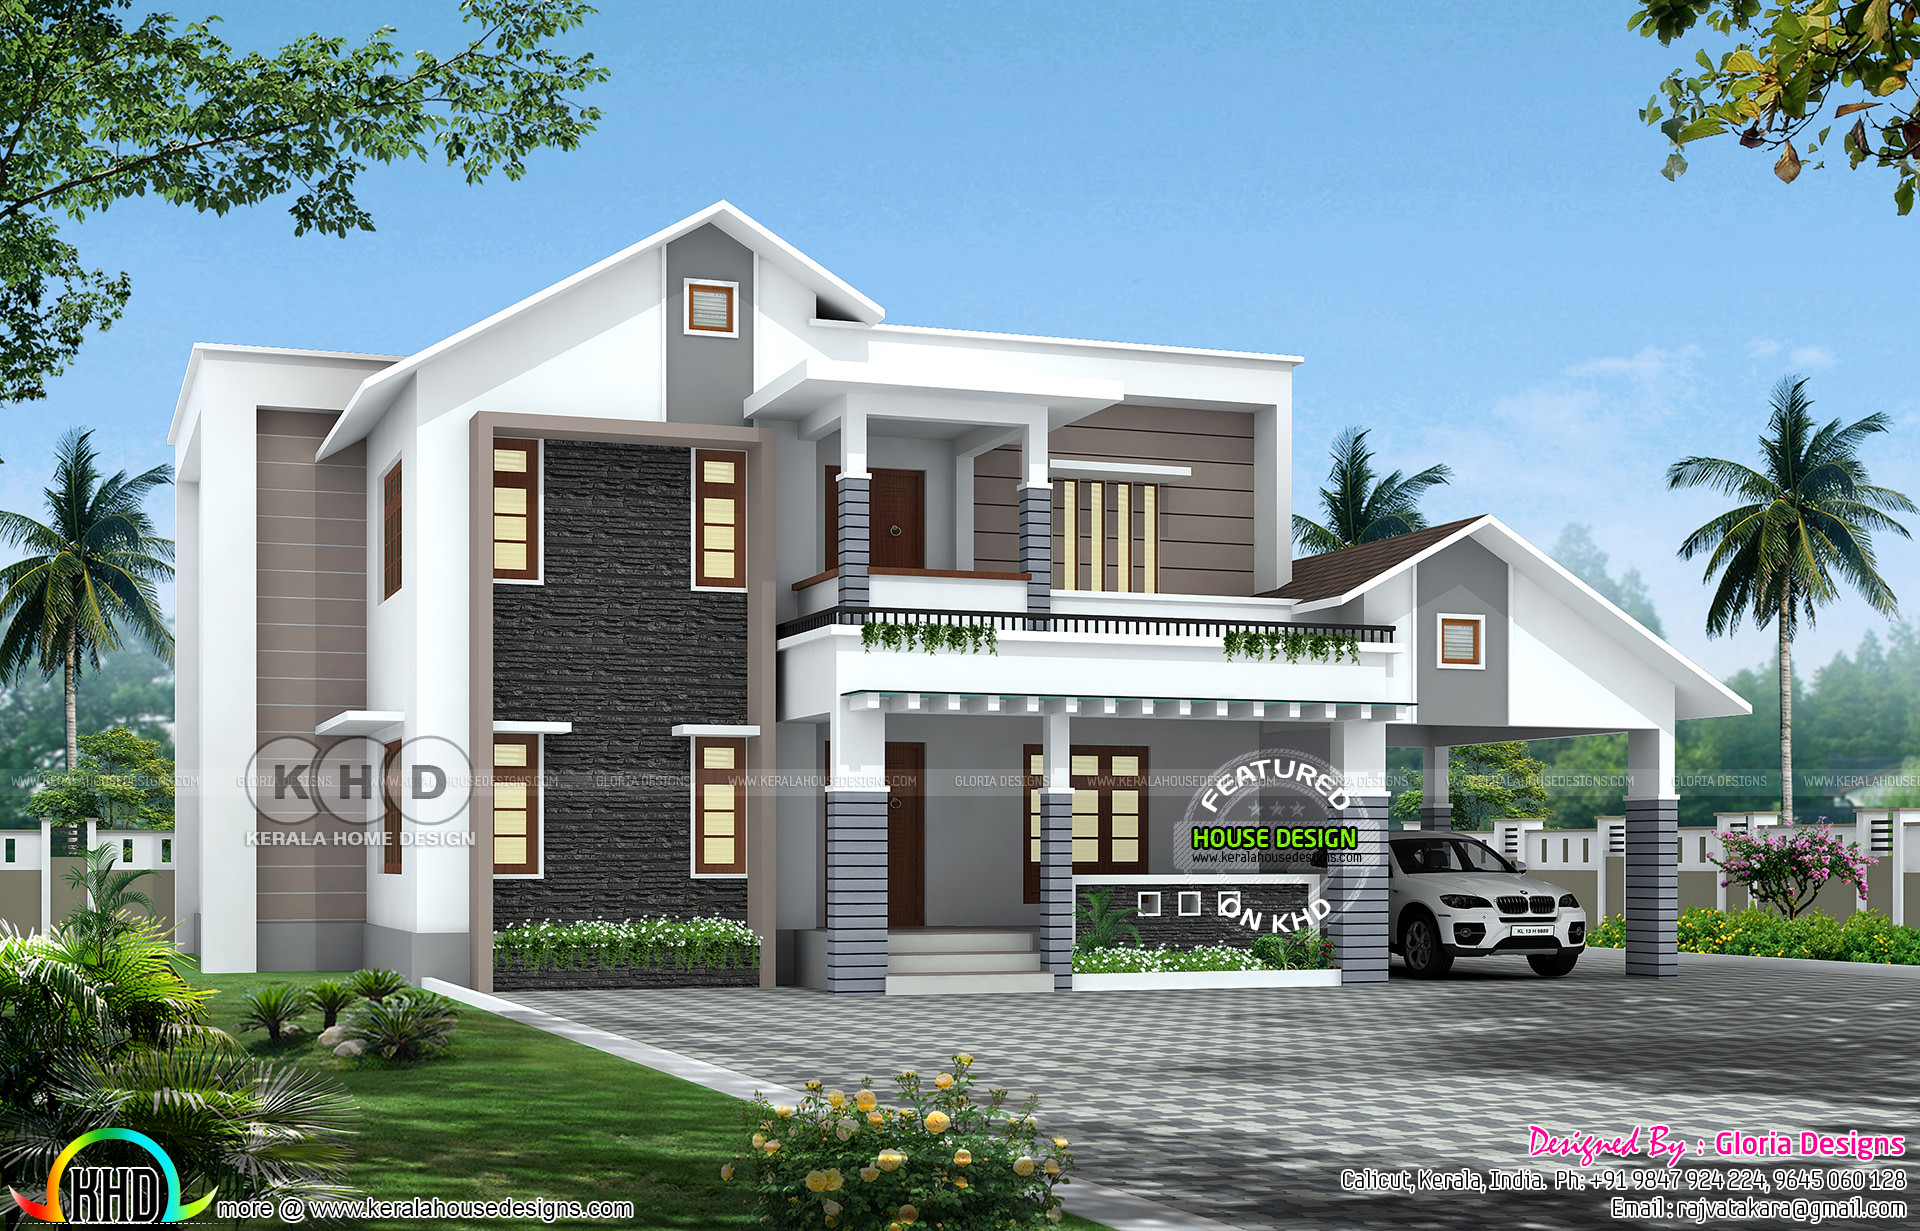 Lovely 4 Bedroom Mixed Roof Home Part - 12: Attached Bedrooms : 4. Design Style : Mixed Roof. Interior Ideas And  Facility Details. Read More » Please Follow Kerala Home Design